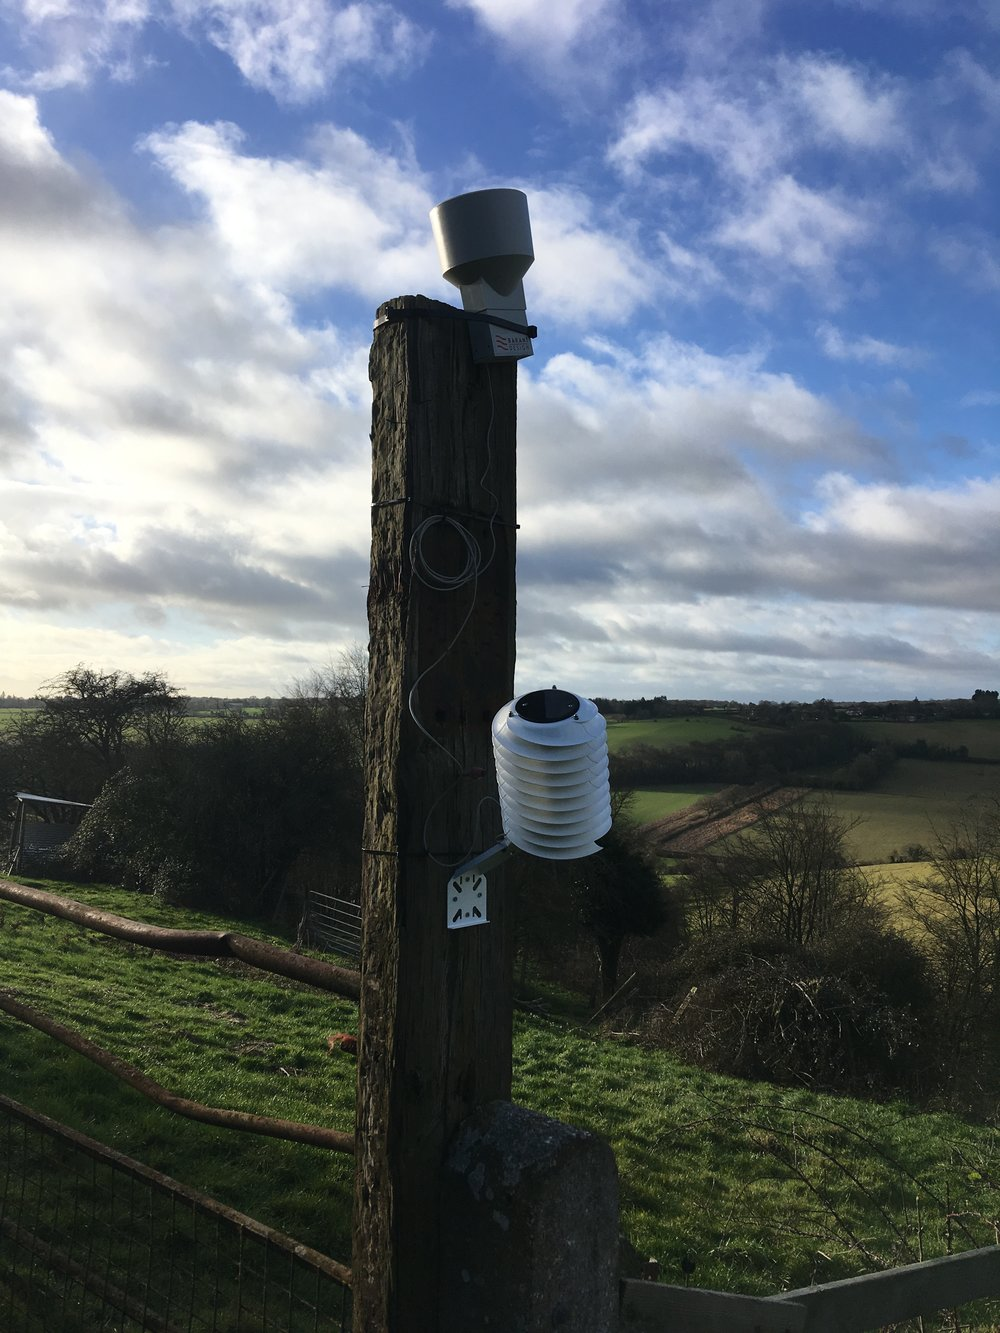 The wrong way to mount the MeteoHelix weather station: They are not level and the MeteoHelix is on the shady-side of the mounting pole which obstructs the sun sensor.